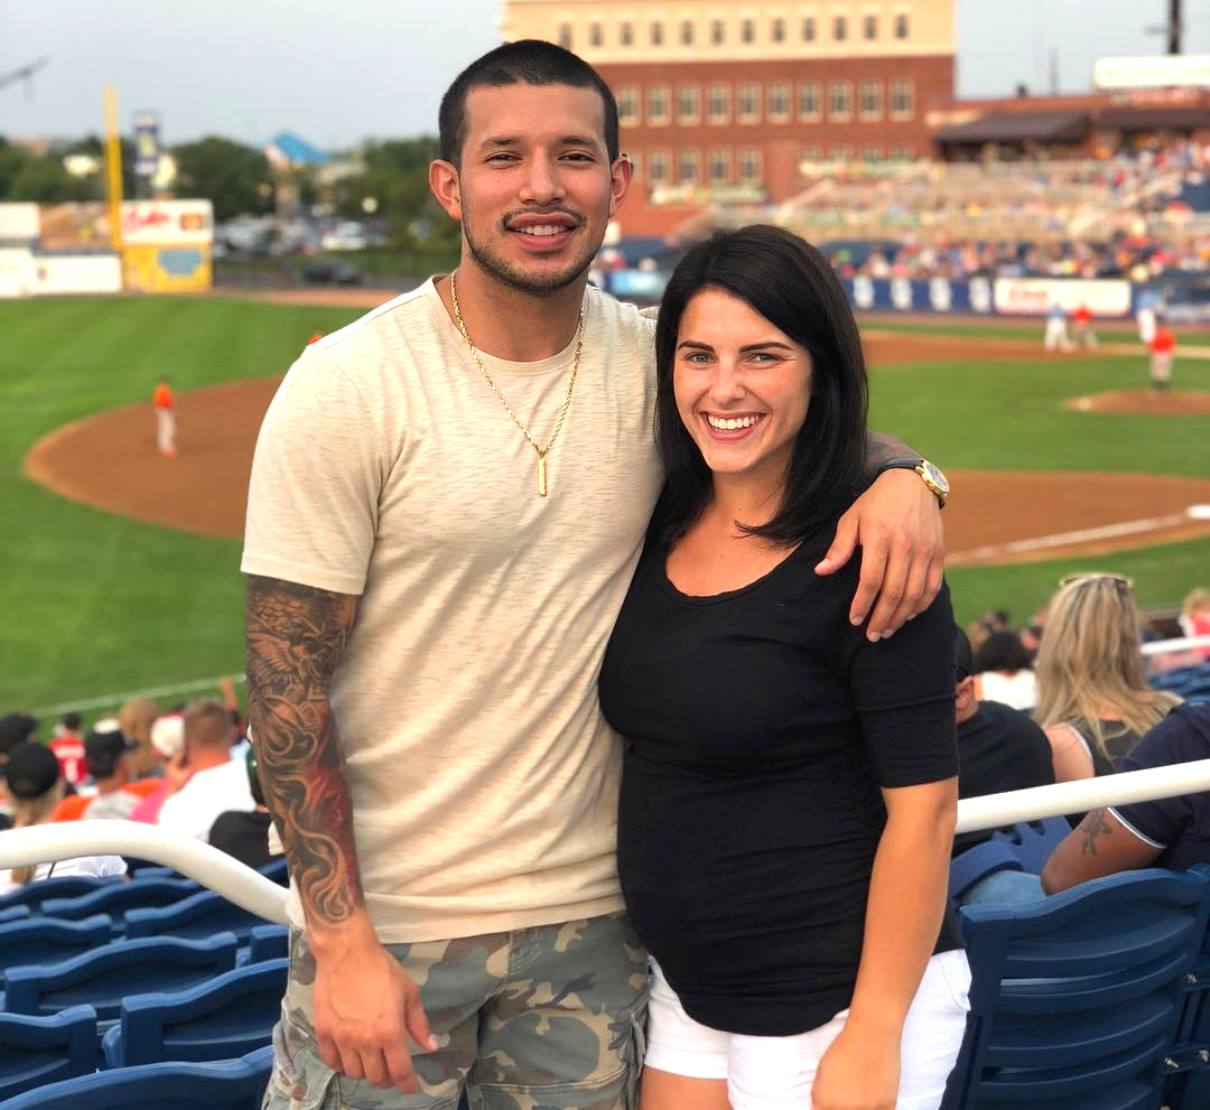 Are Teen Mom 2's Lauren Comeau and Javi Marroquin engaged